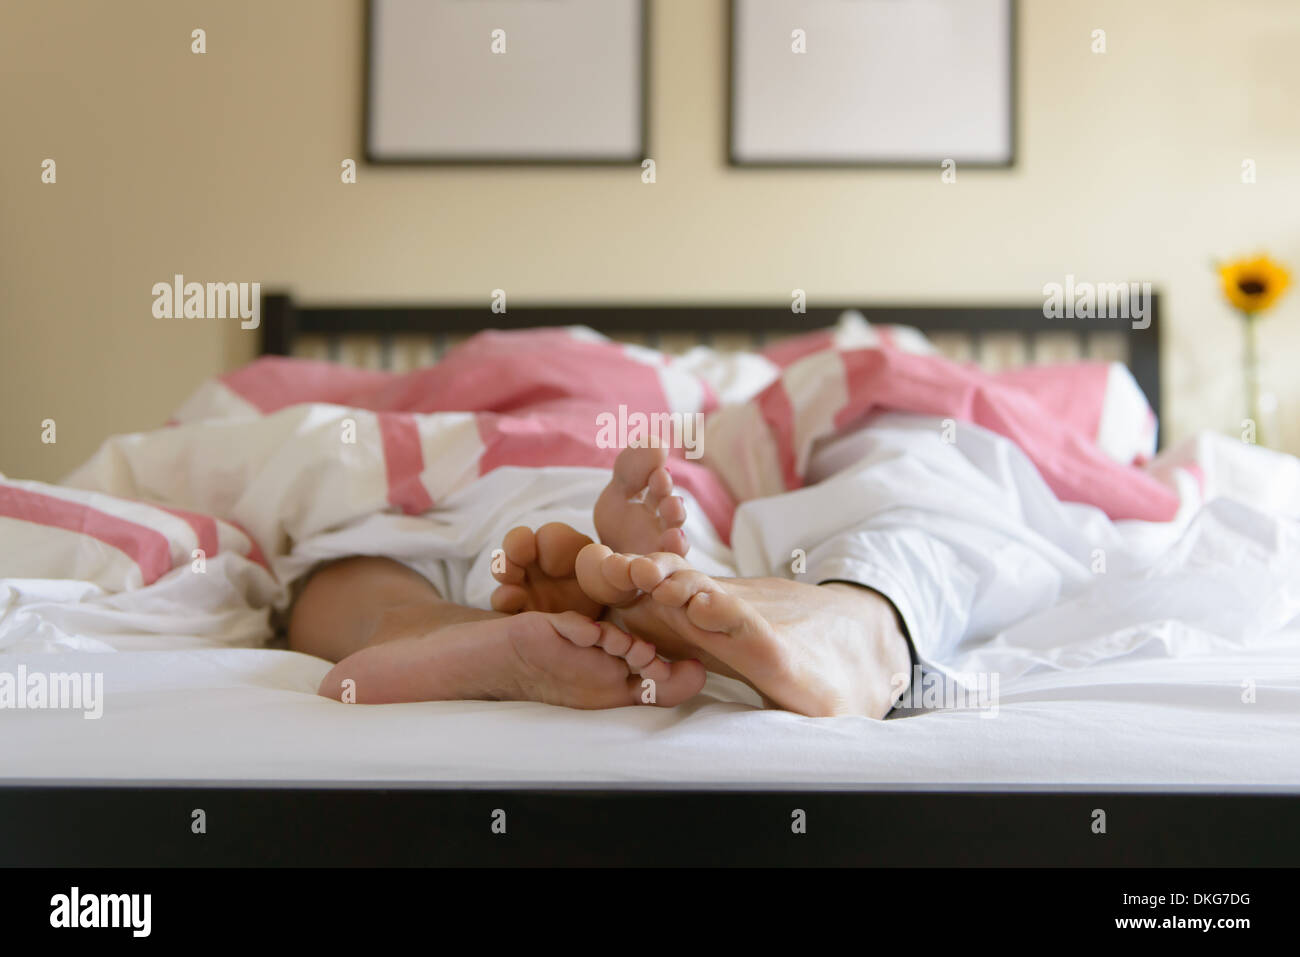 Surface level image of young couple in bed, feet out of duvet - Stock Image